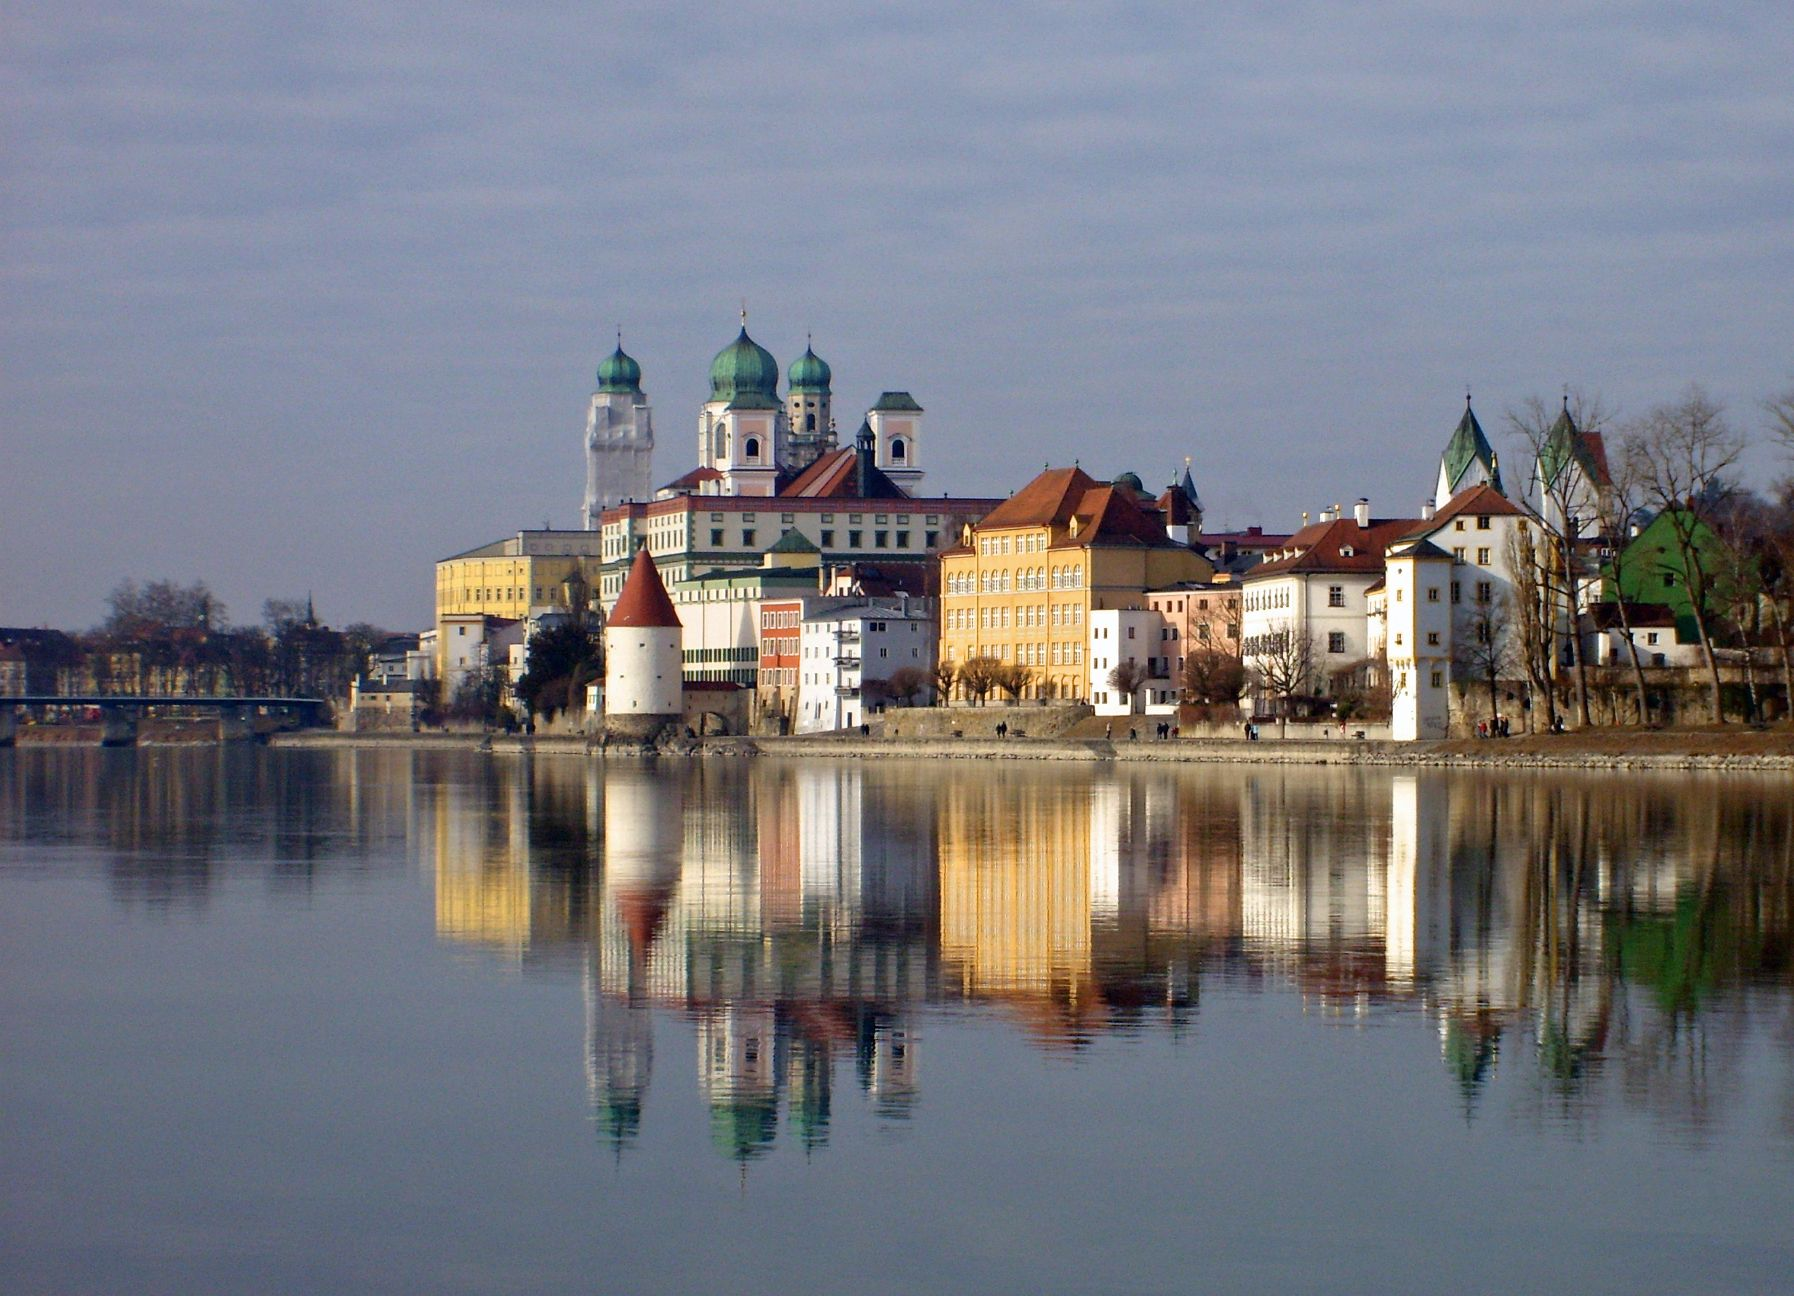 Passau Germany  city photo : Where I live! Passau, Germany | Favorite Places & Spaces | Pinterest